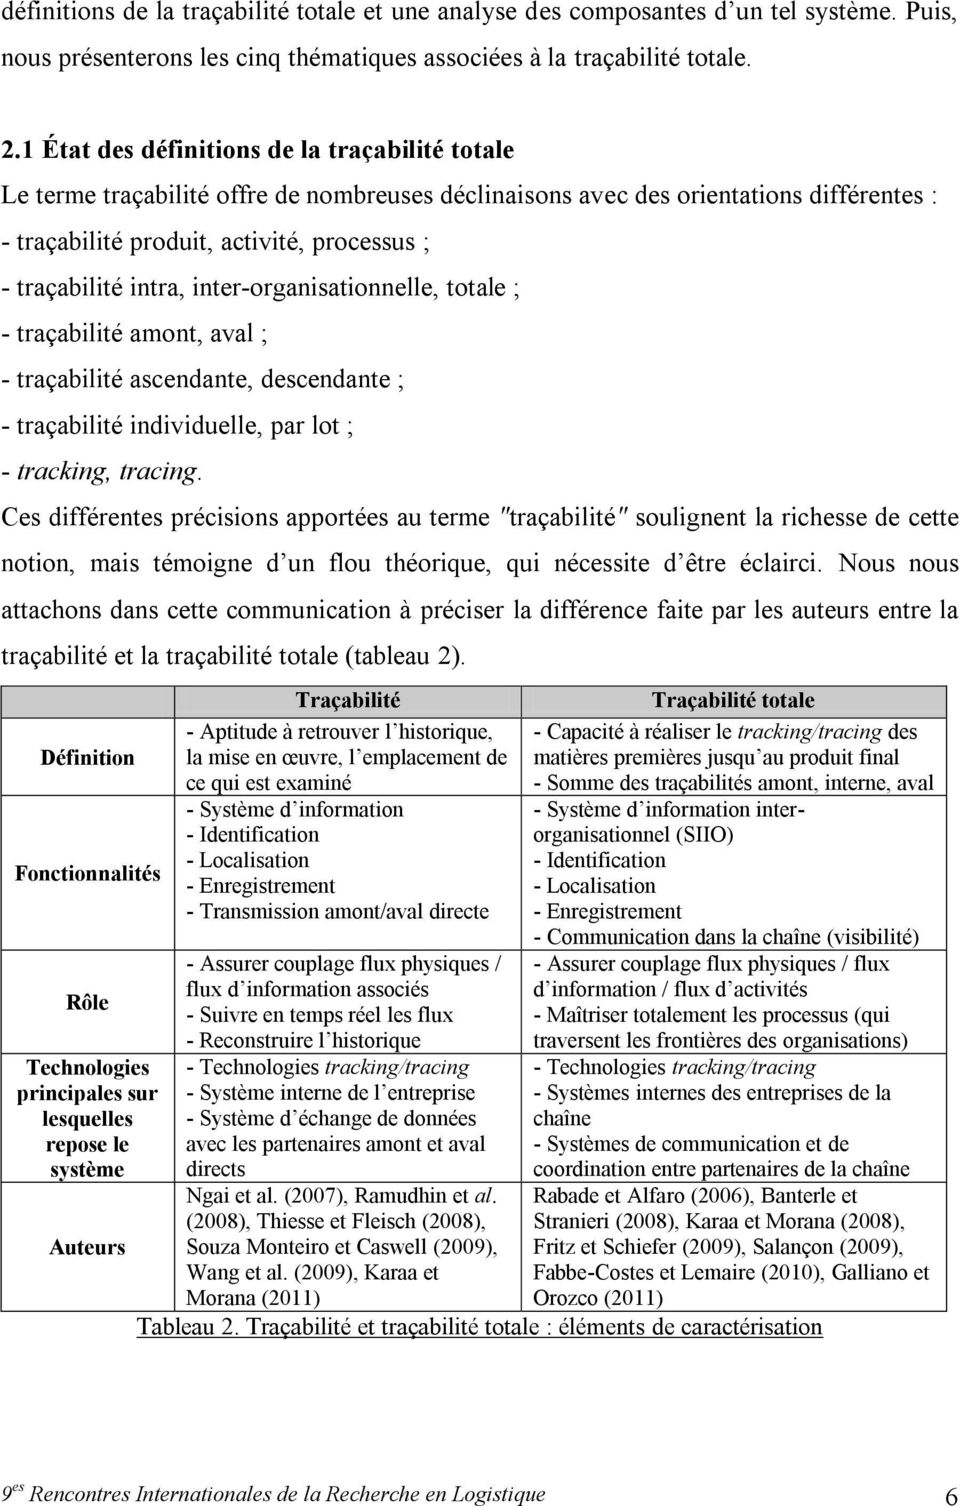 intra, inter-organisationnelle, totale ; - traçabilité amont, aval ; - traçabilité ascendante, descendante ; - traçabilité individuelle, par lot ; - tracking, tracing.